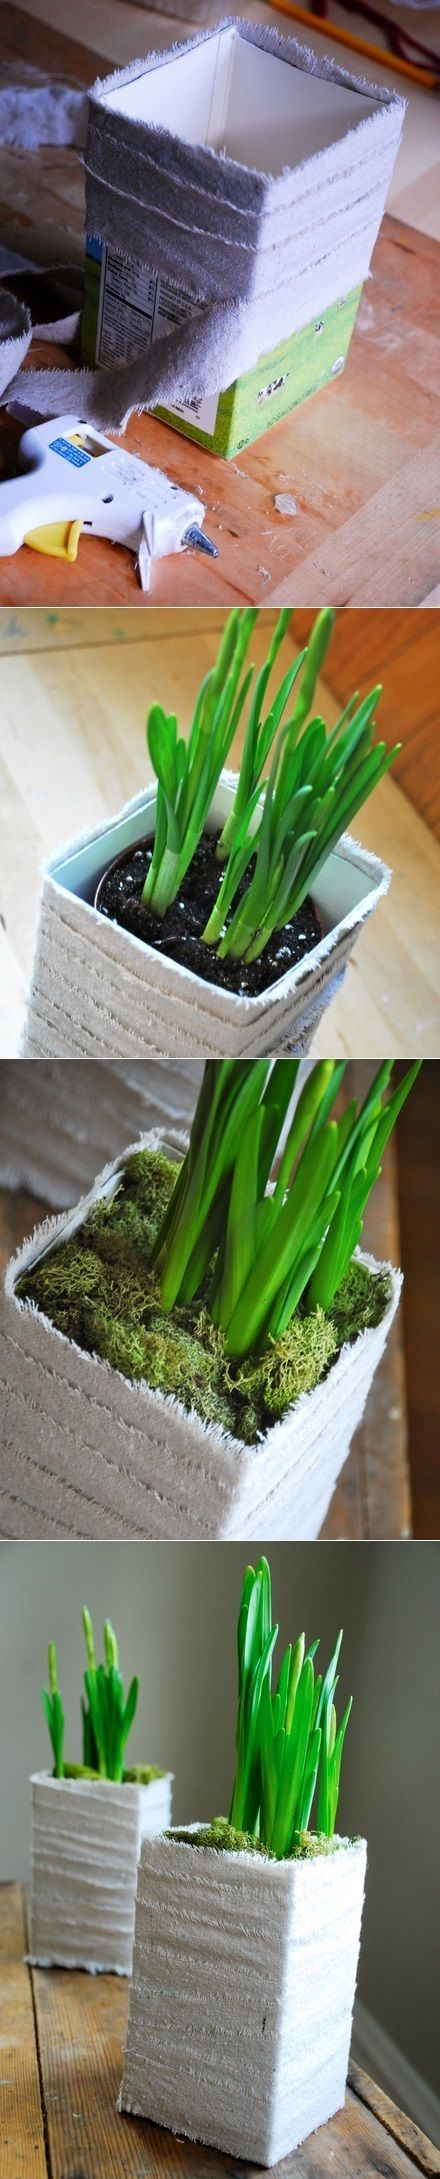 DIY Milk Carton Planter: Simply cut an empty milk carton and wrap it in rough linen. Watch how easily this planter comes together.